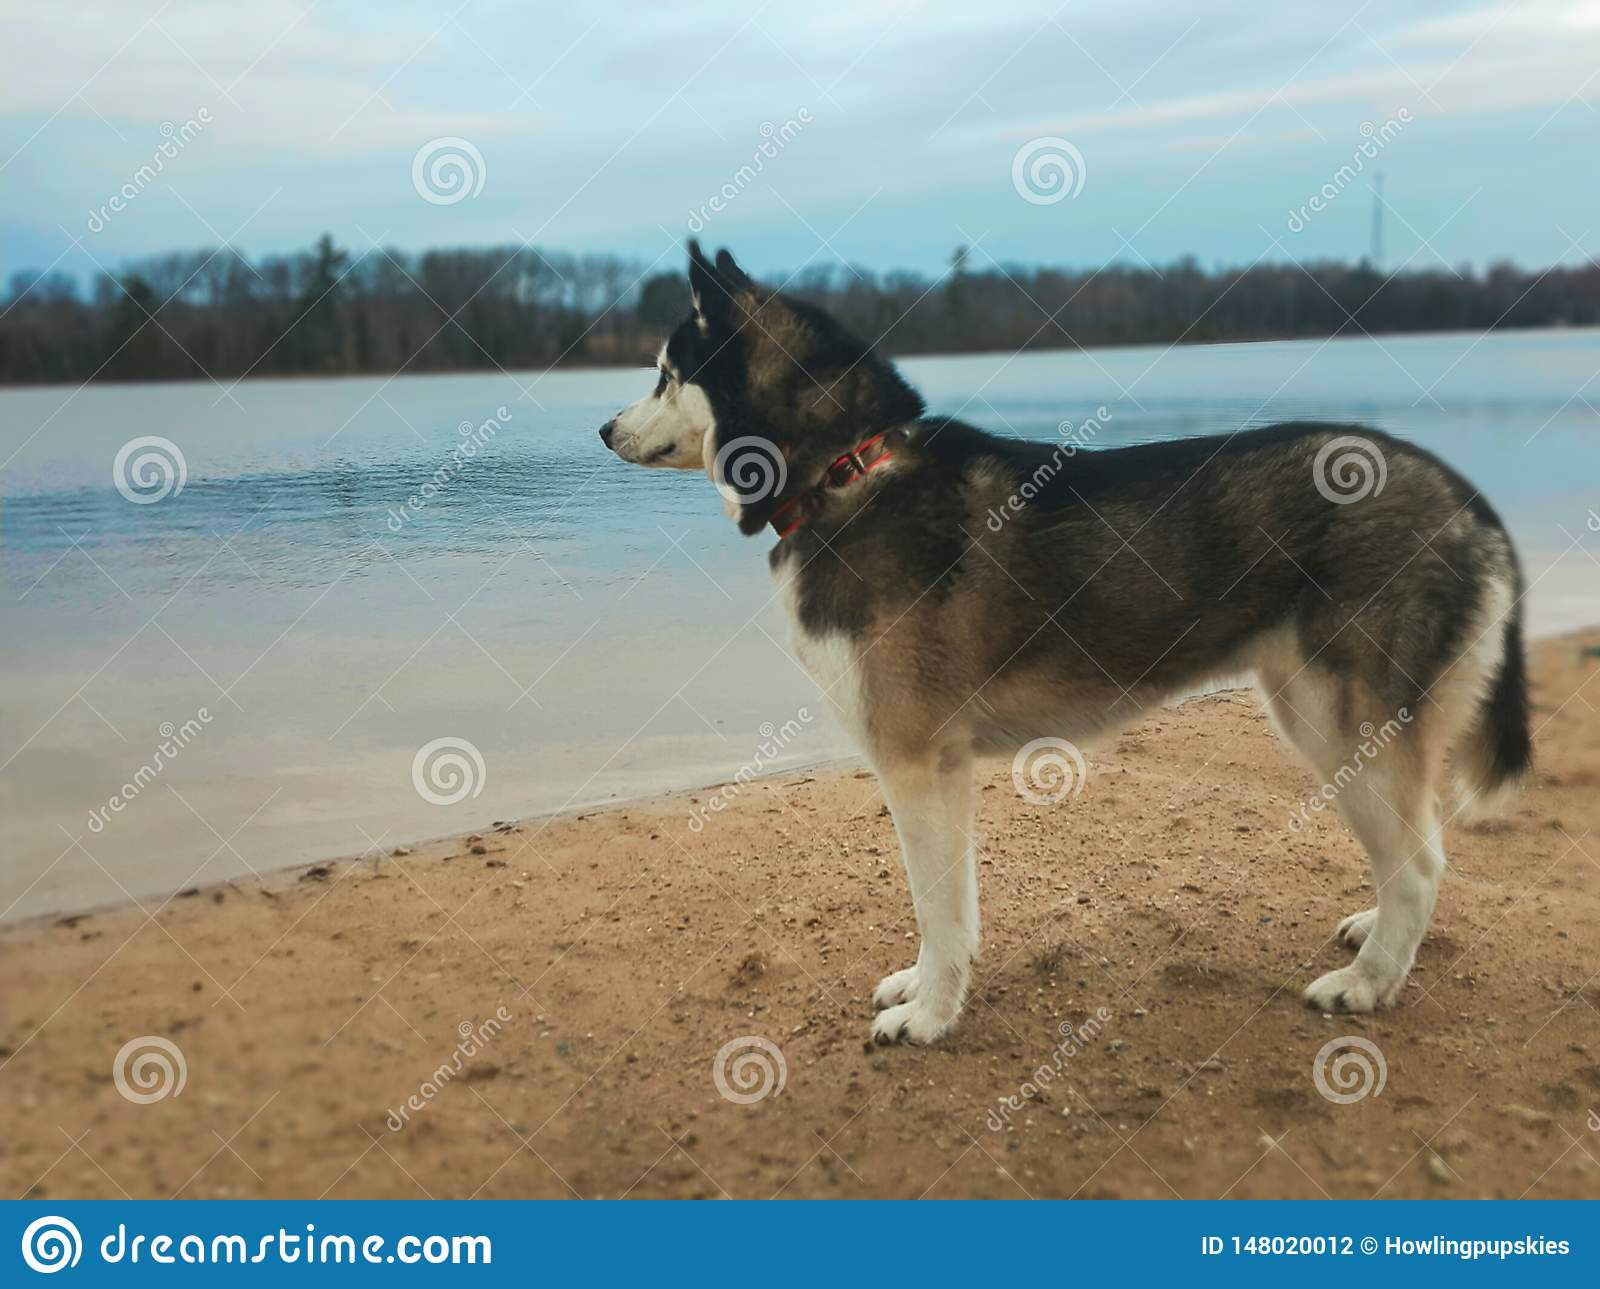 Husky dog by the water